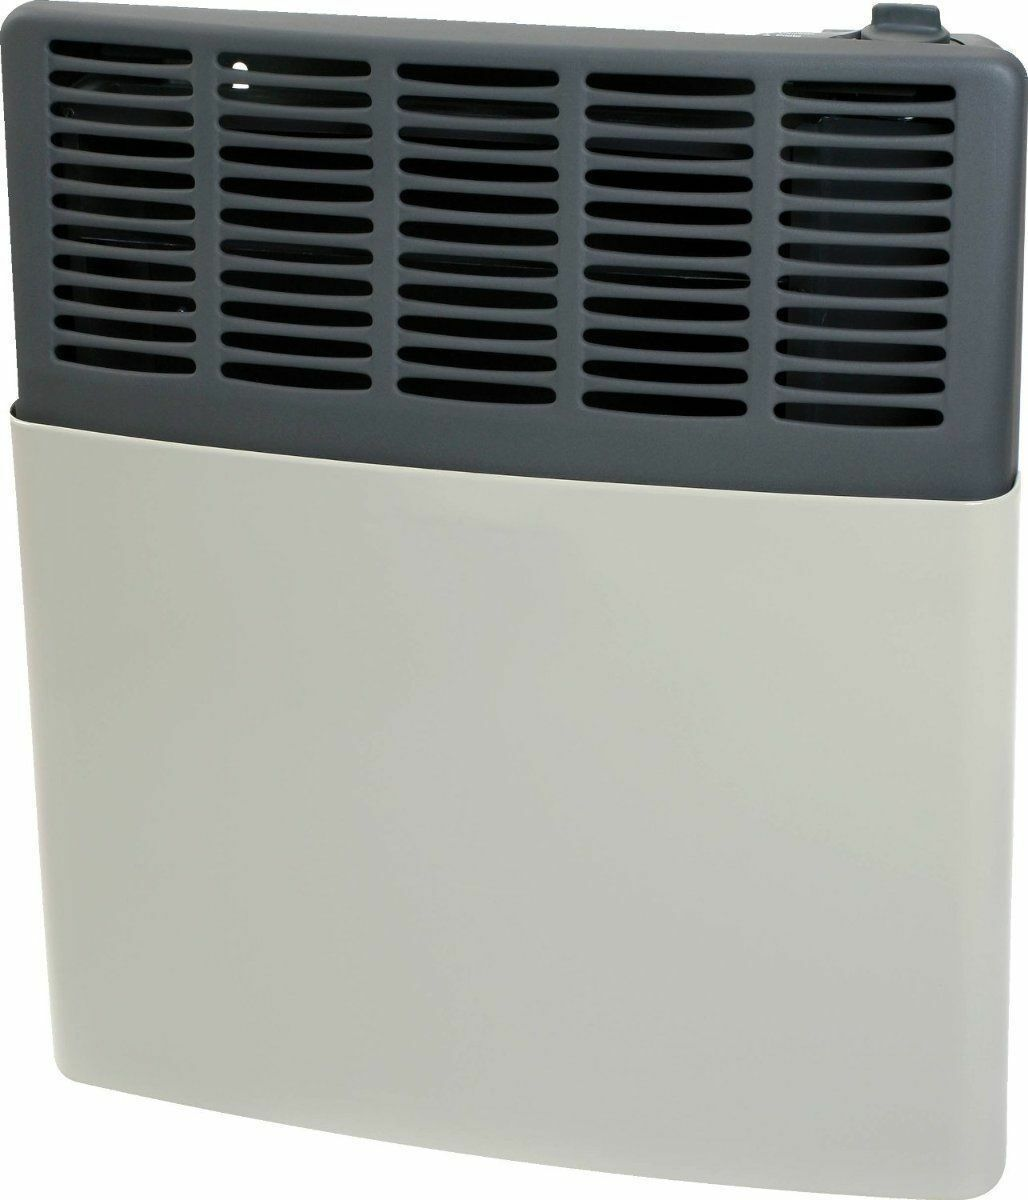 heating and air units prices